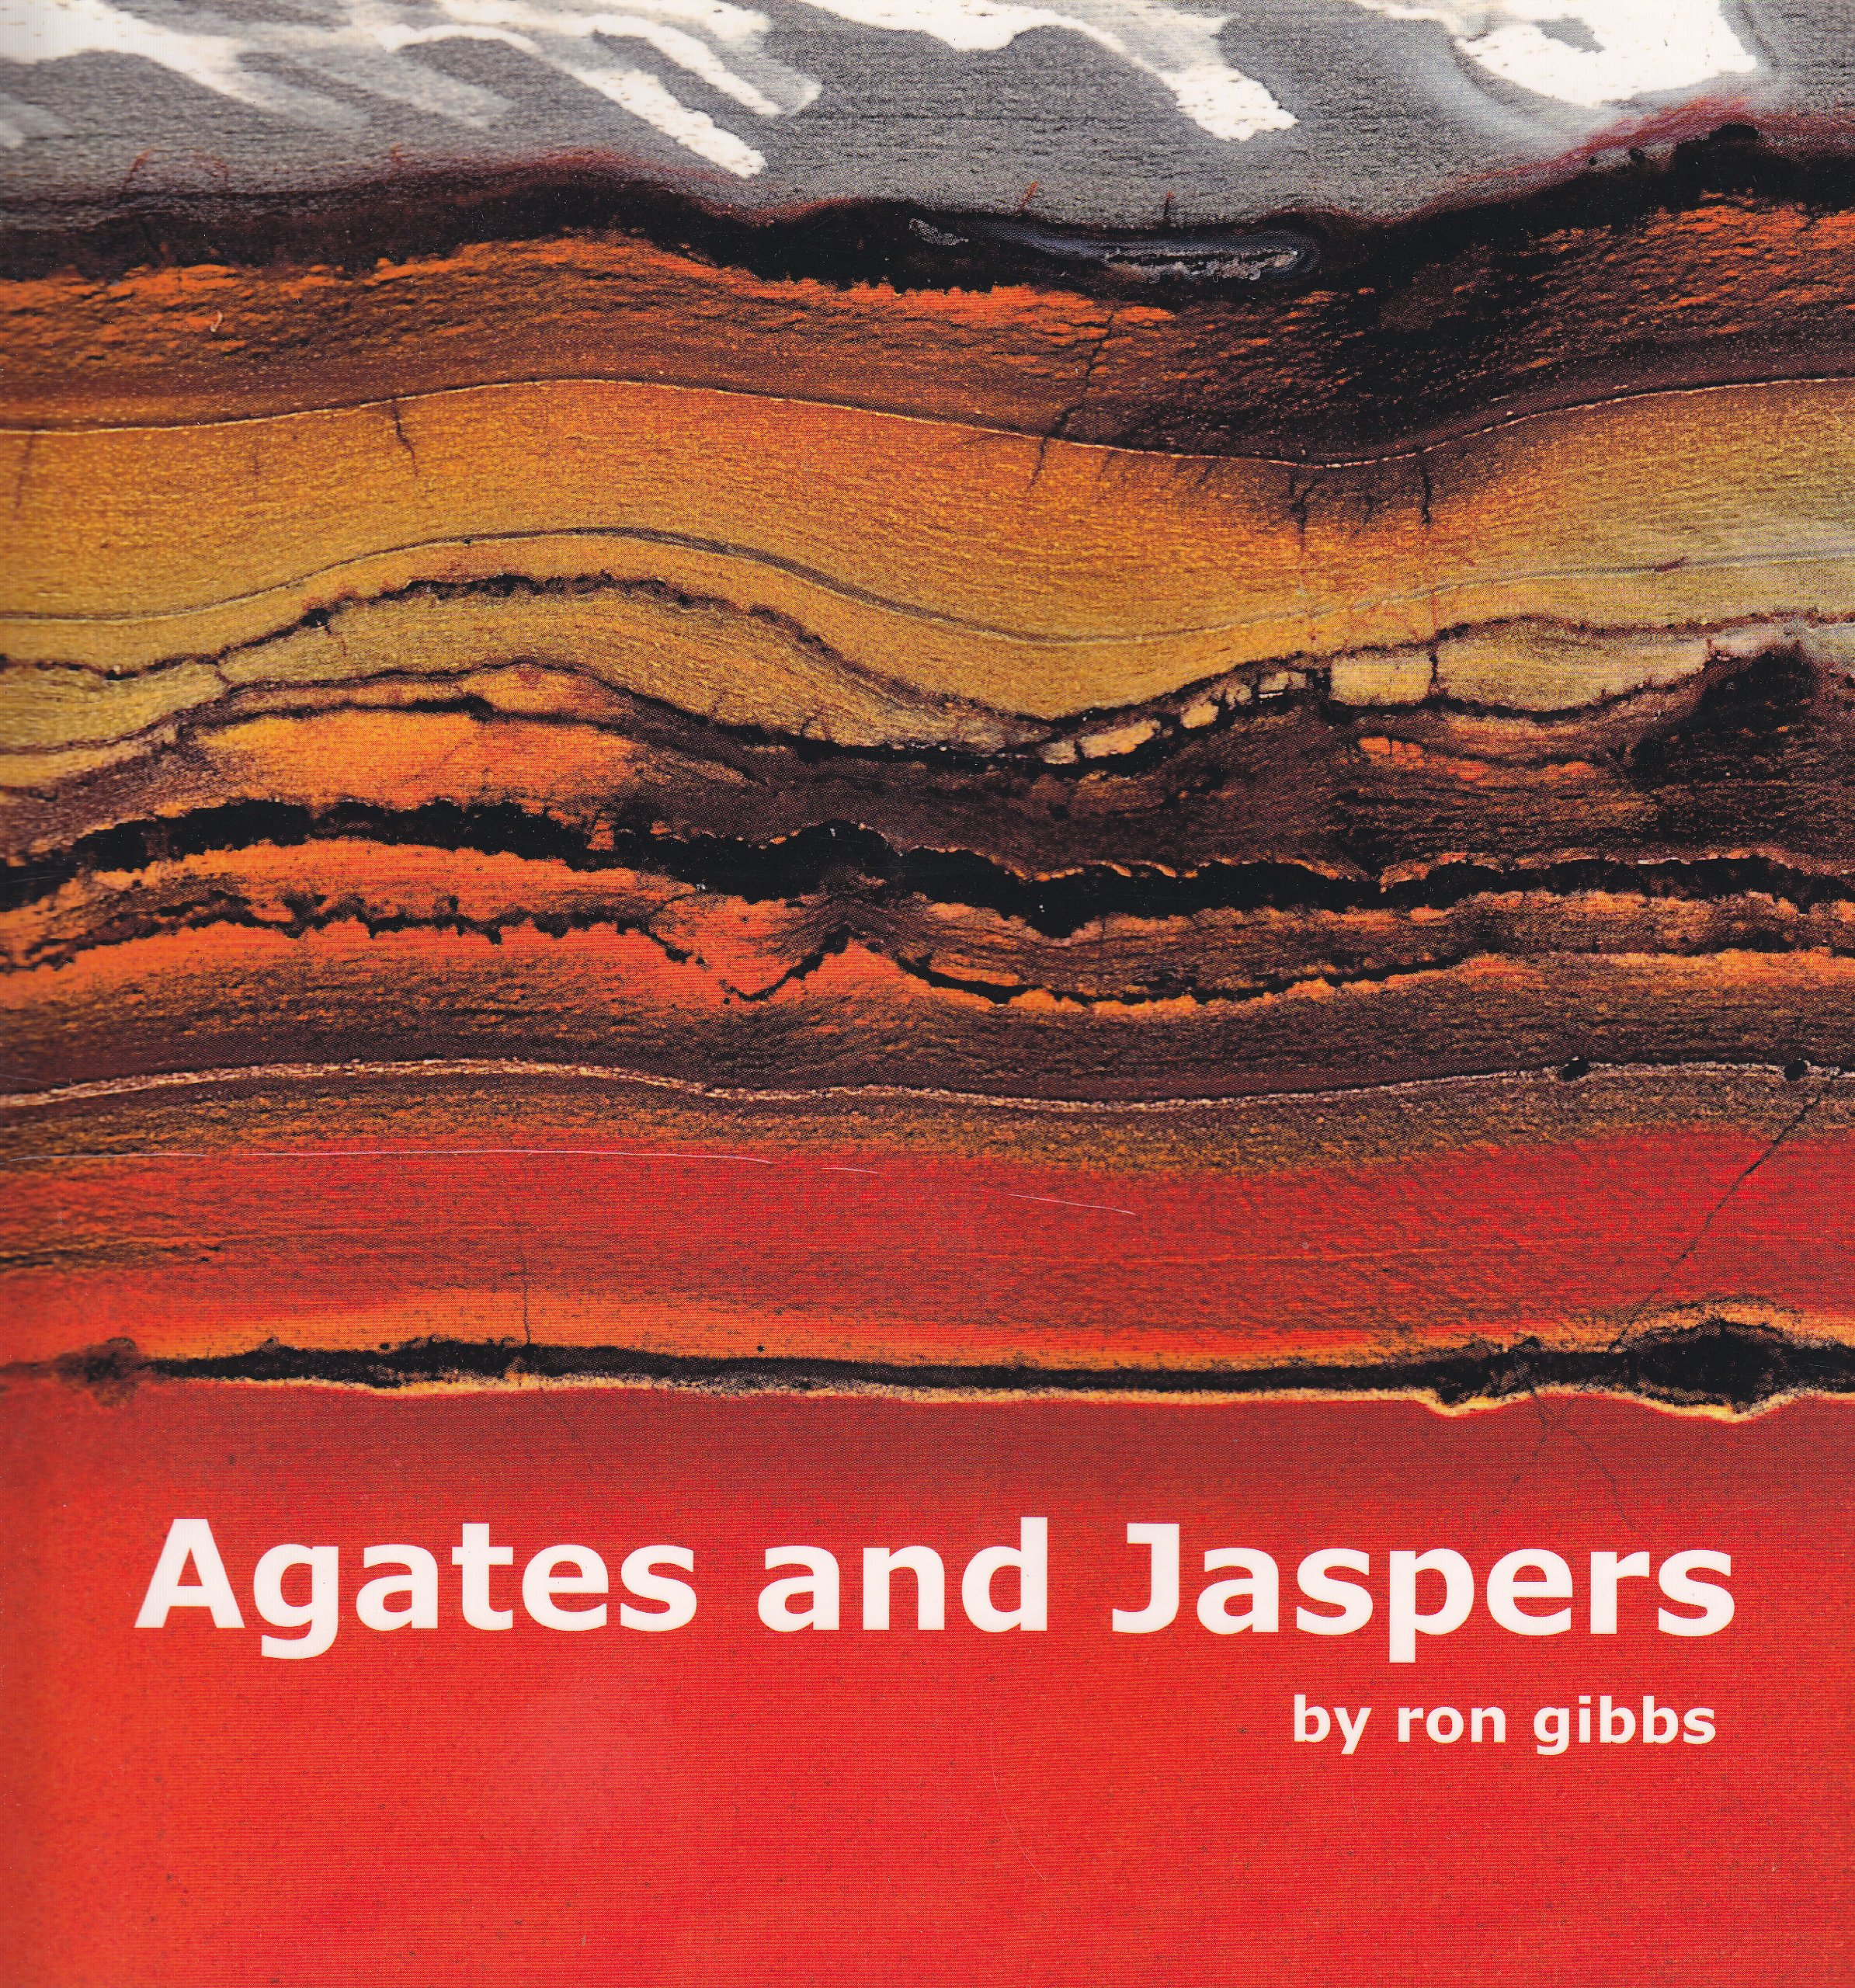 Agates and Jaspers Paperback – 2009